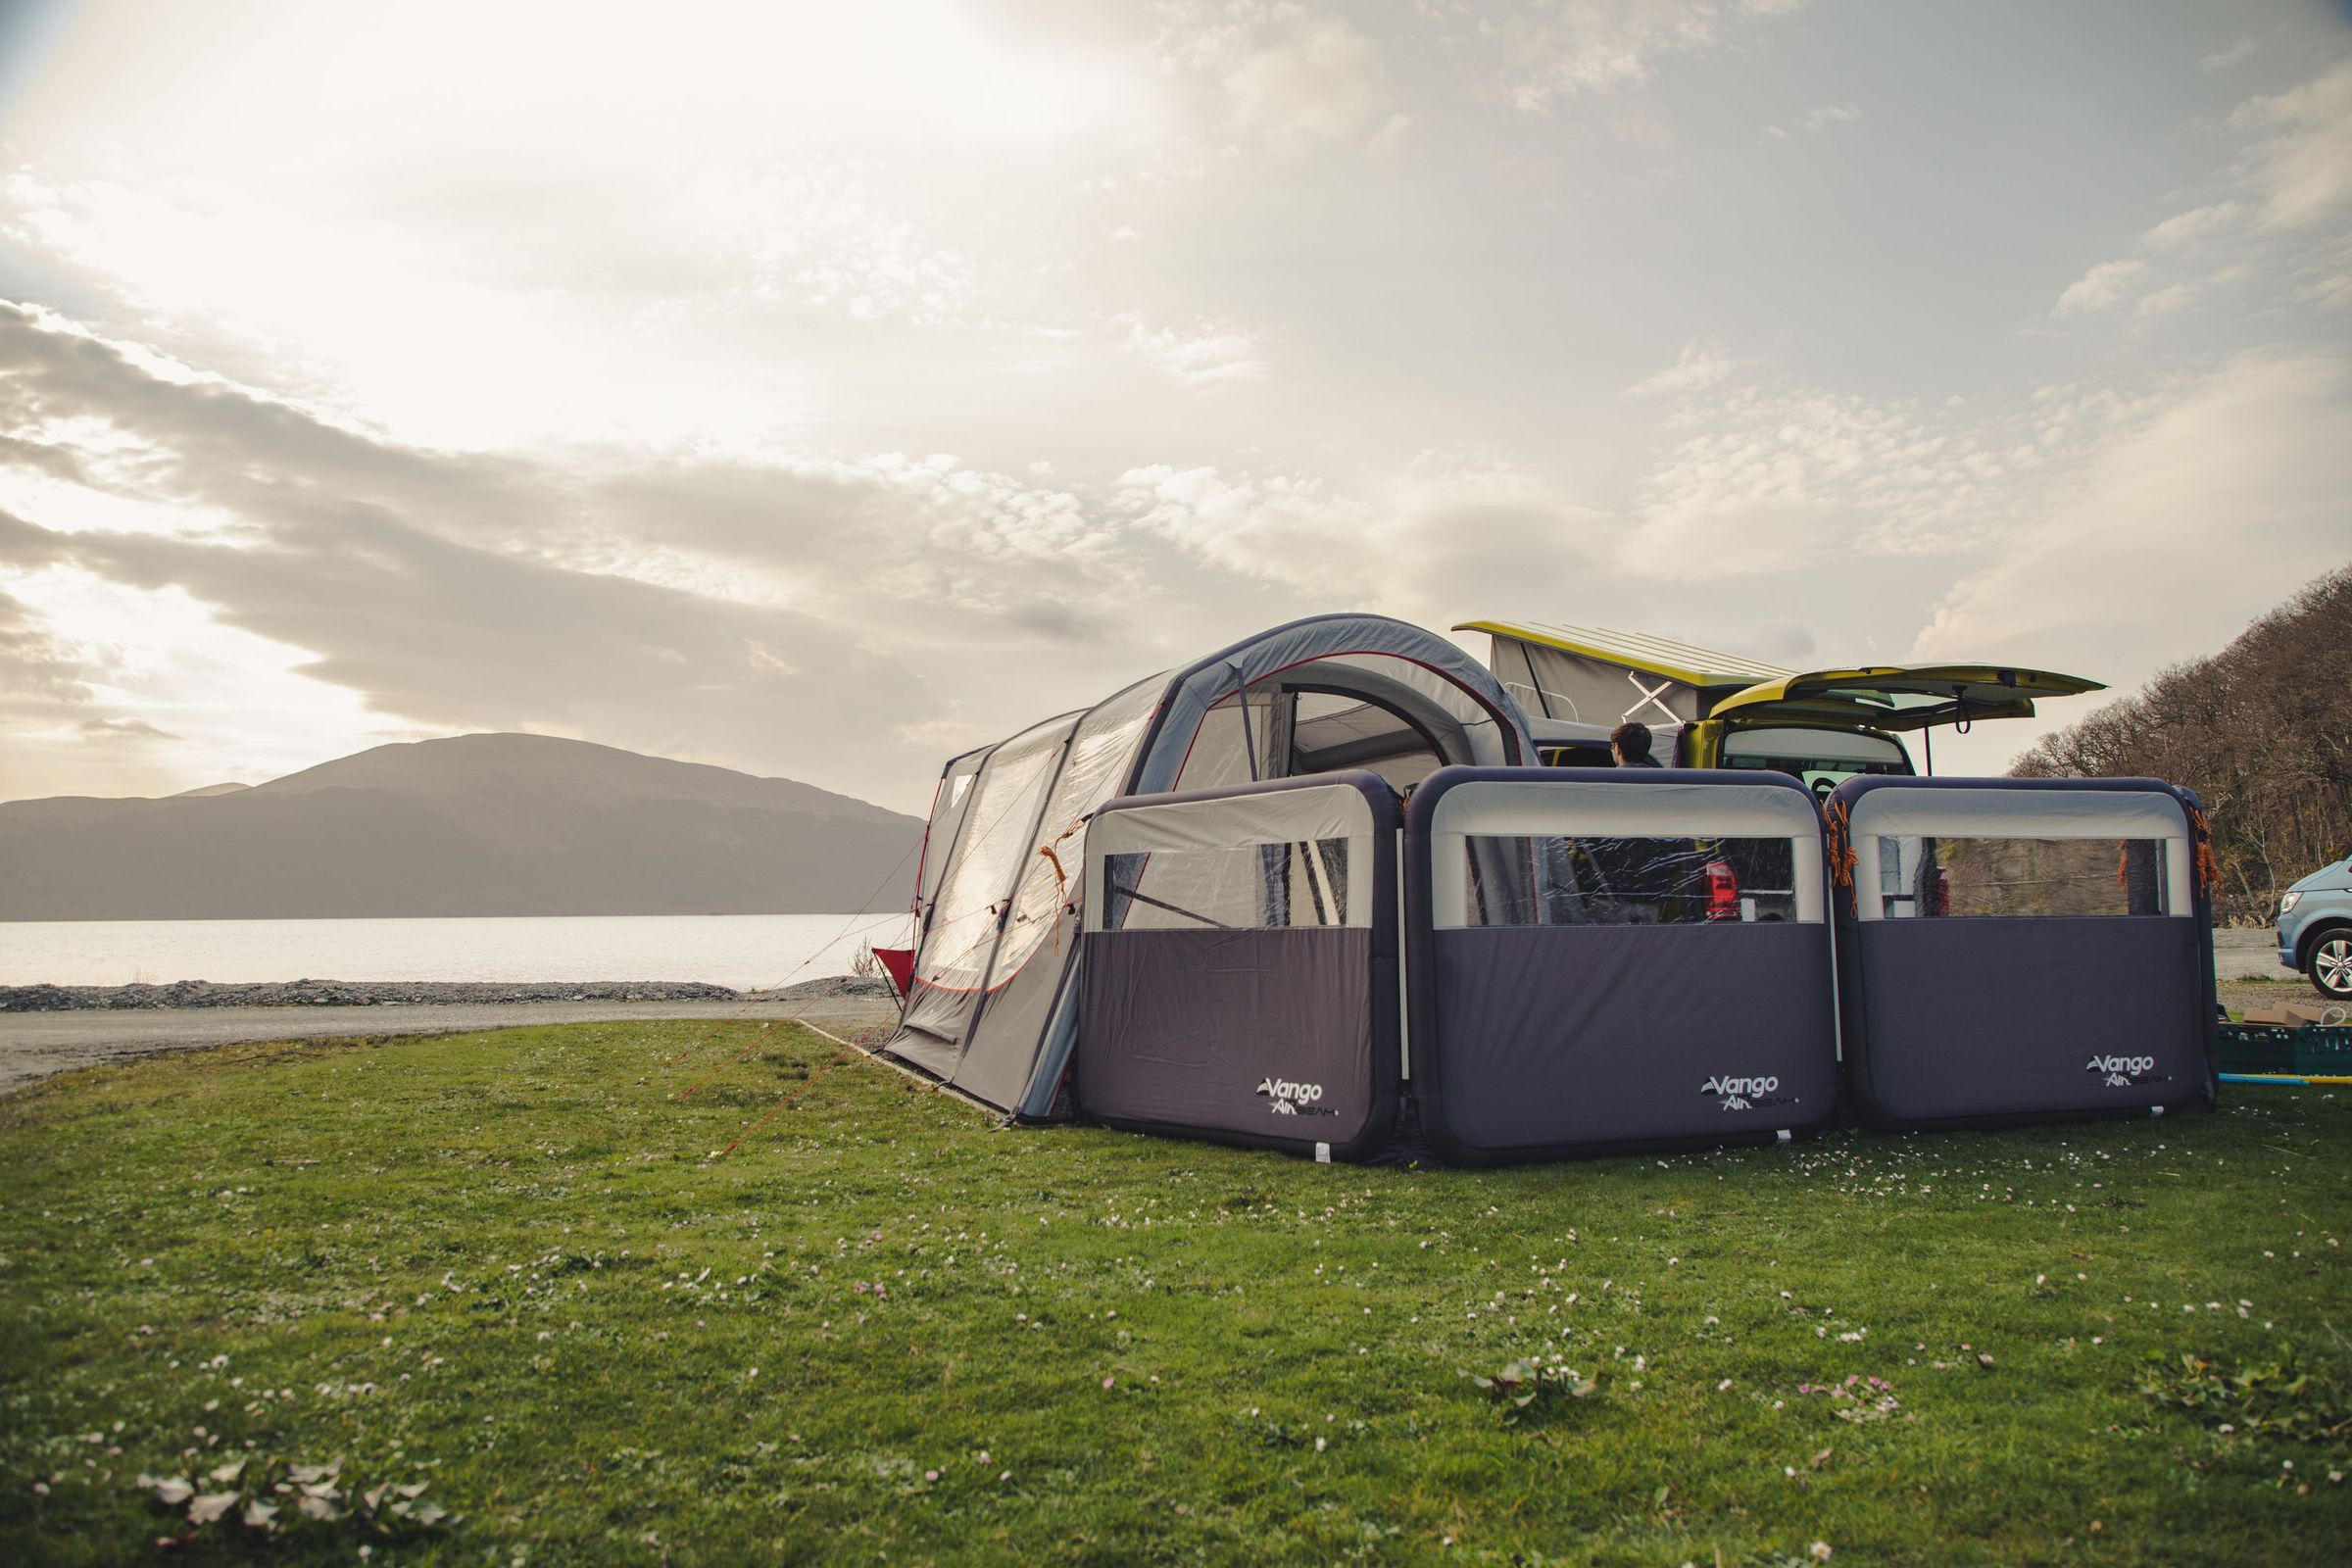 Vango Magra Vw Low Driveaway Awning Norwich Camping8